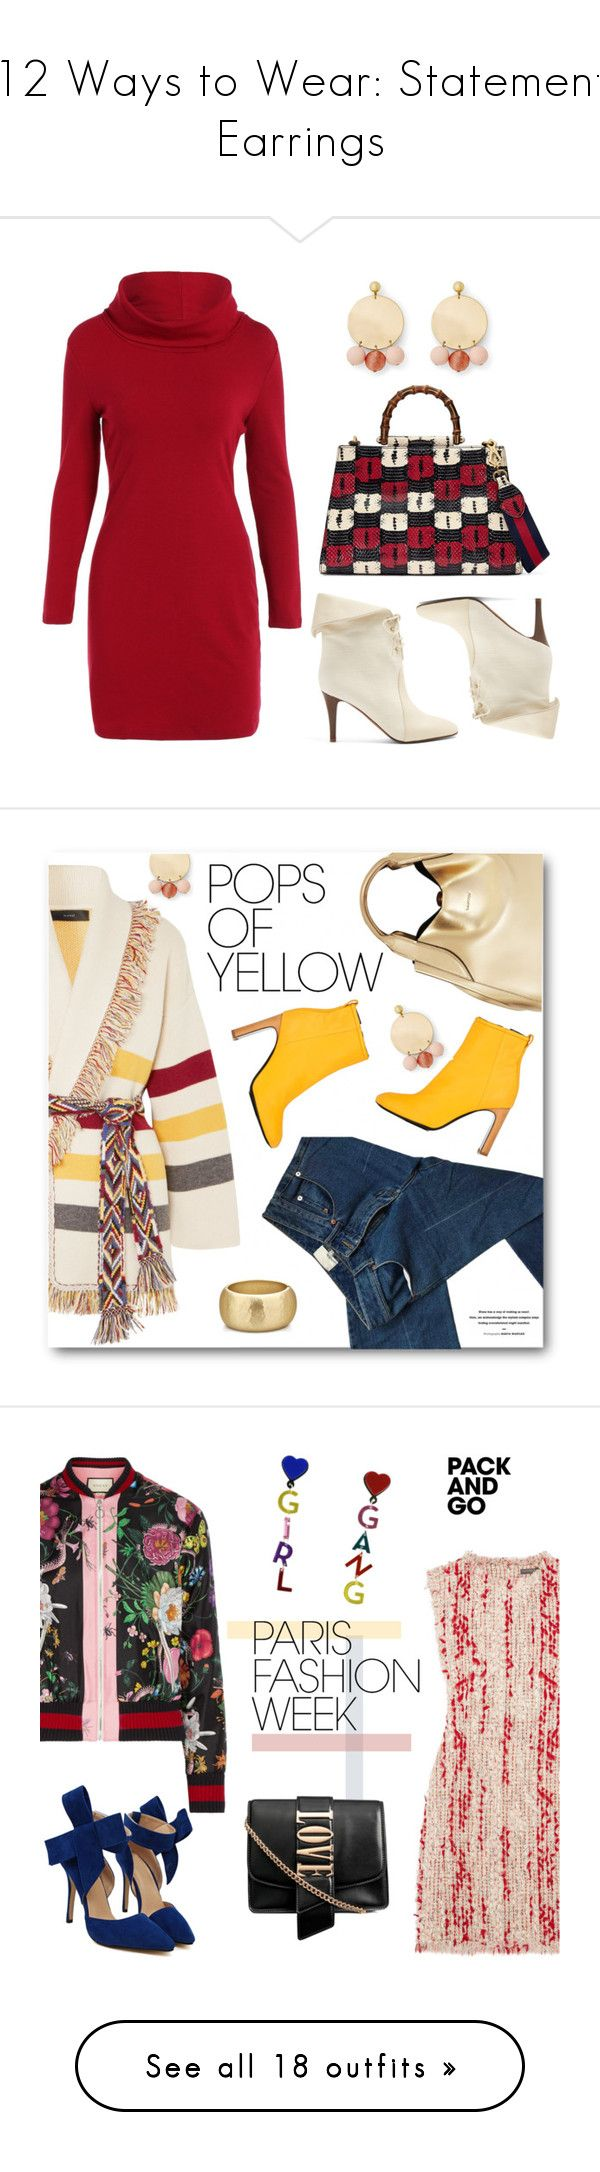 """""""12 Ways to Wear: Statement Earrings"""" by polyvore-editorial ❤ liked on Polyvore featuring StatementEarrings, waystowear, Gucci, Chloé, Rebecca Minkoff, Alanui, 3.1 Phillip Lim, Lanvin, rag & bone and Current Mood"""